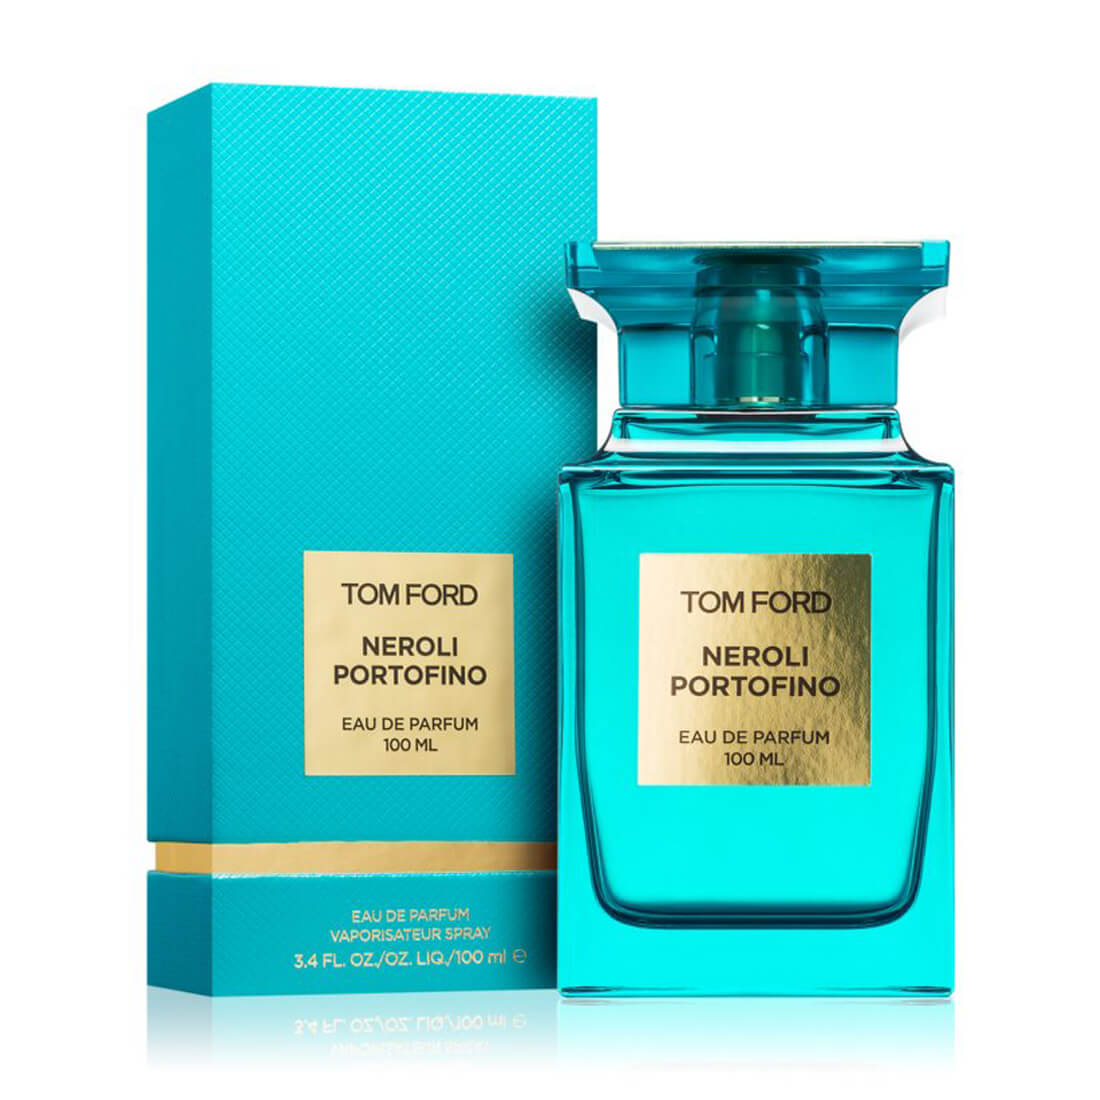 Tom Ford Neroli Portofino Eau De Perfume For Unisex - 50ml